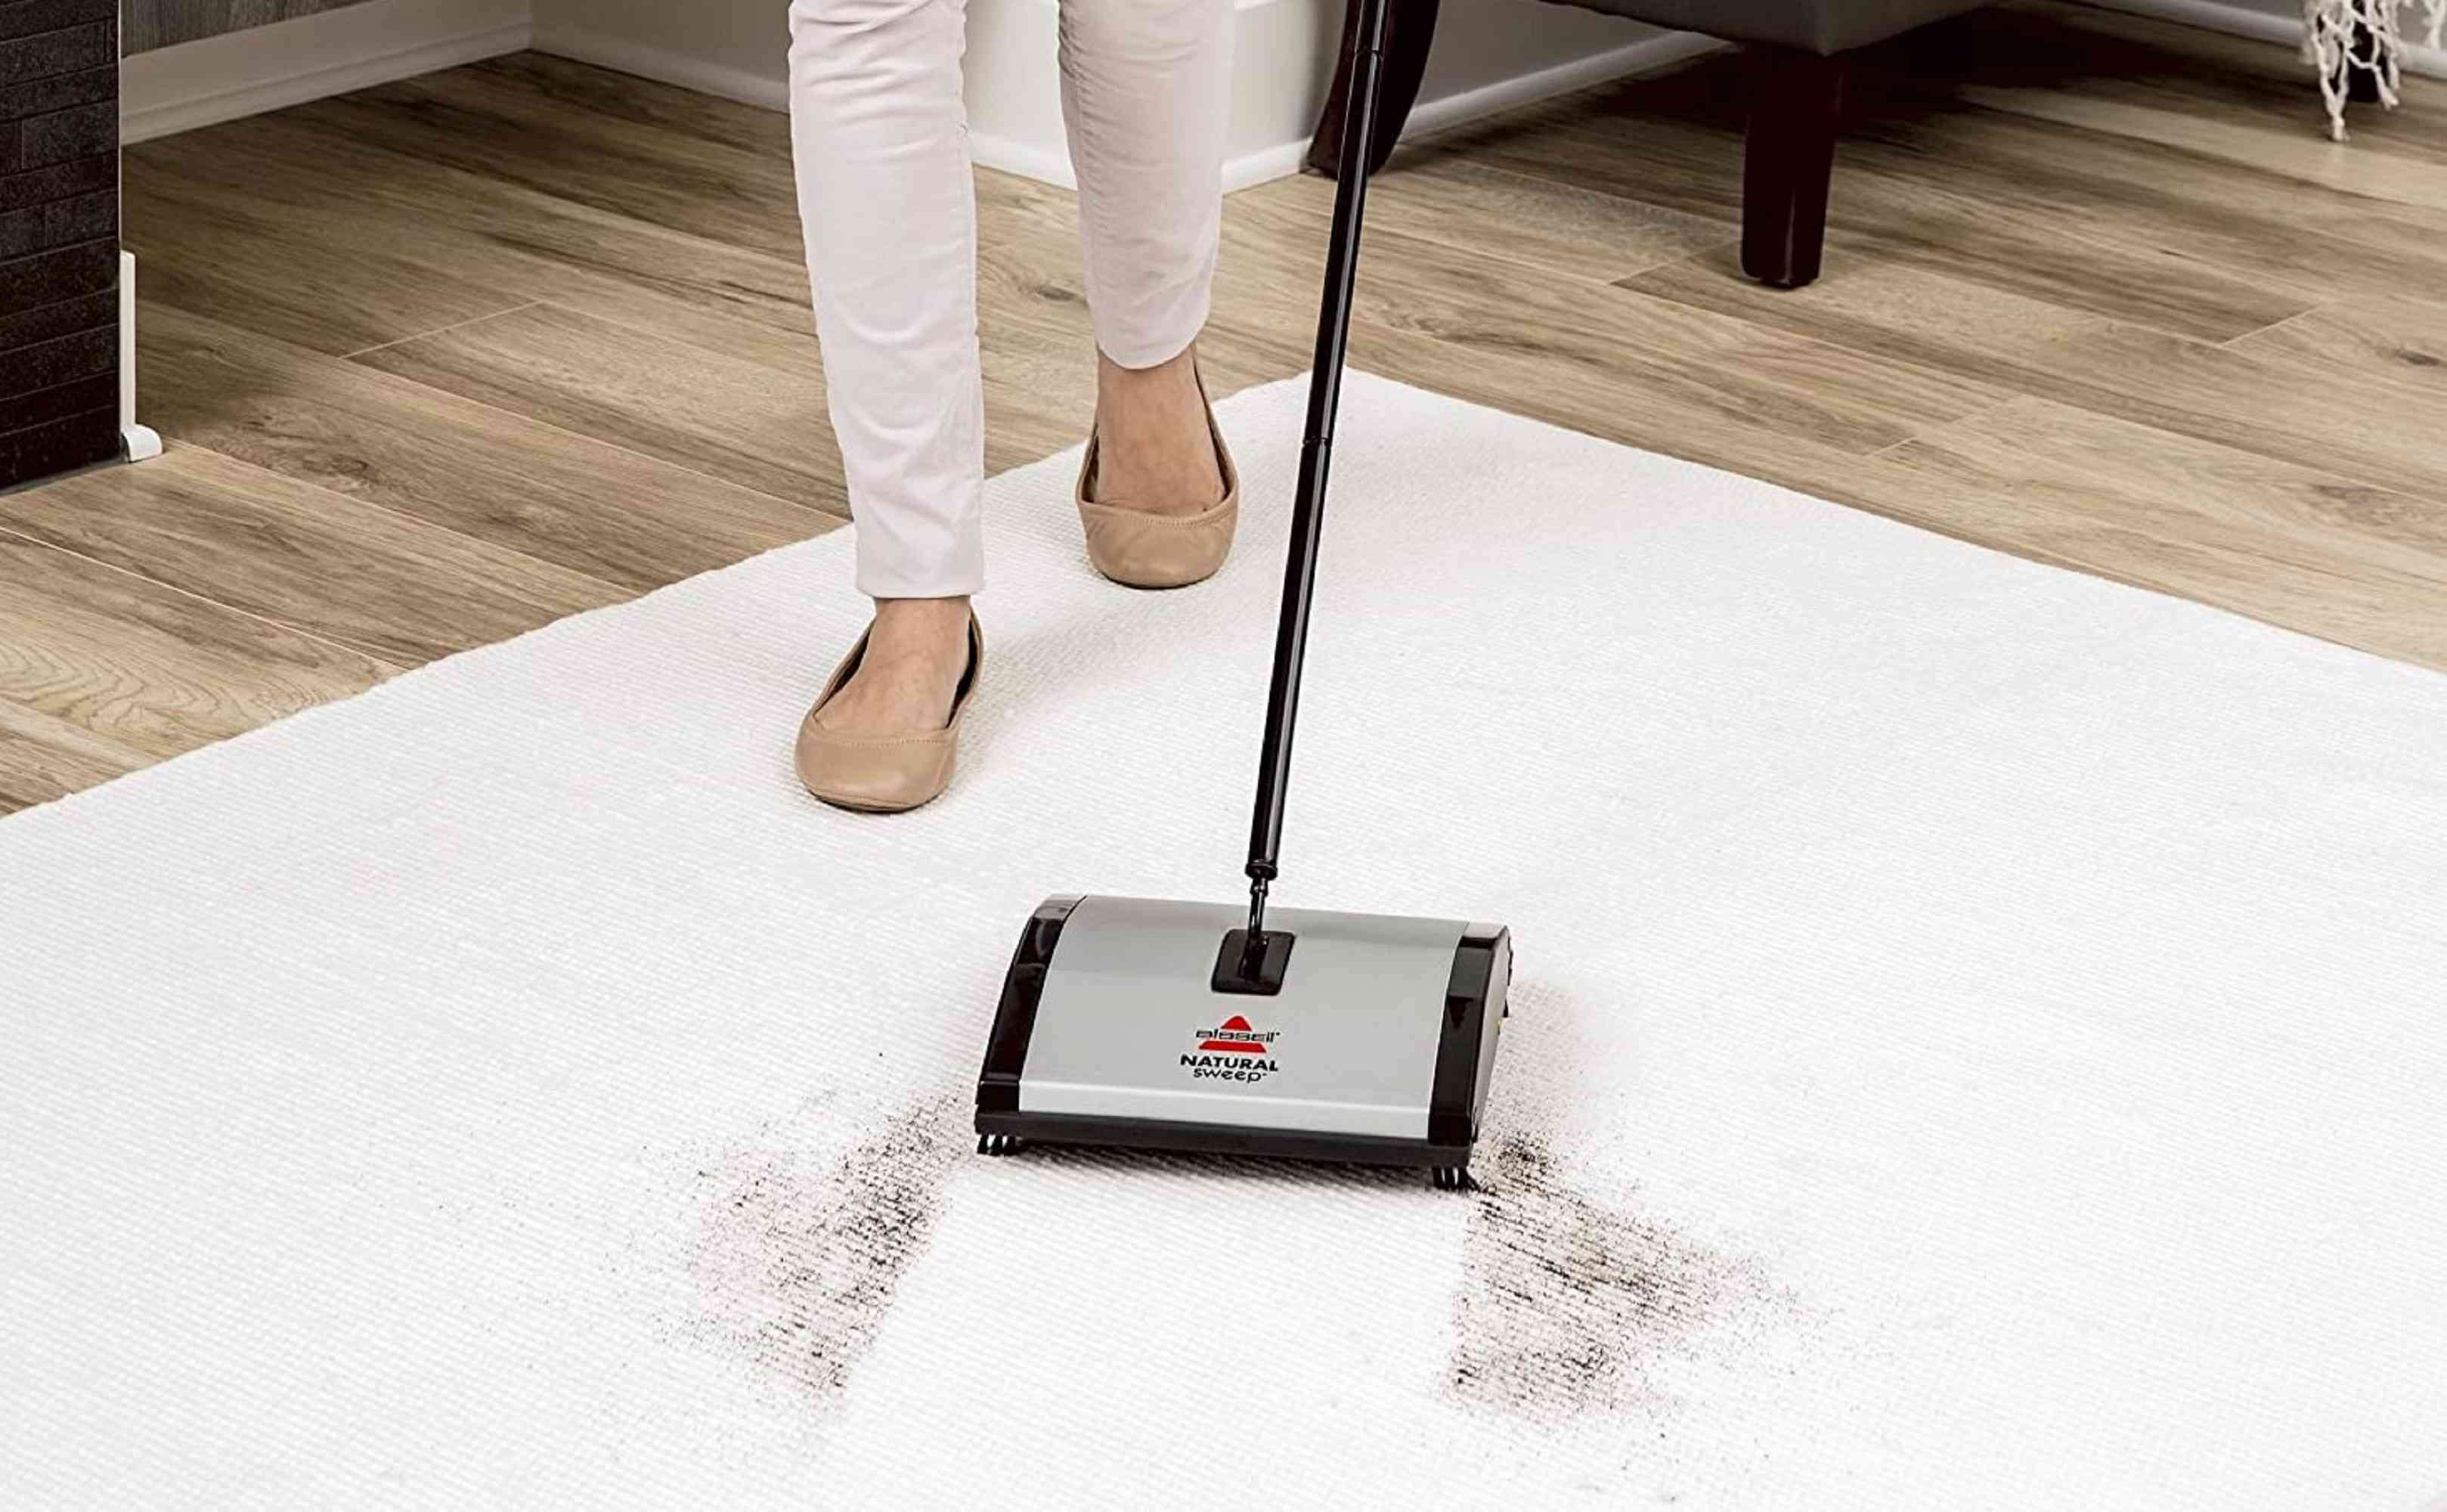 Woman using a Bissell Carpet Sweeper on a white carpet